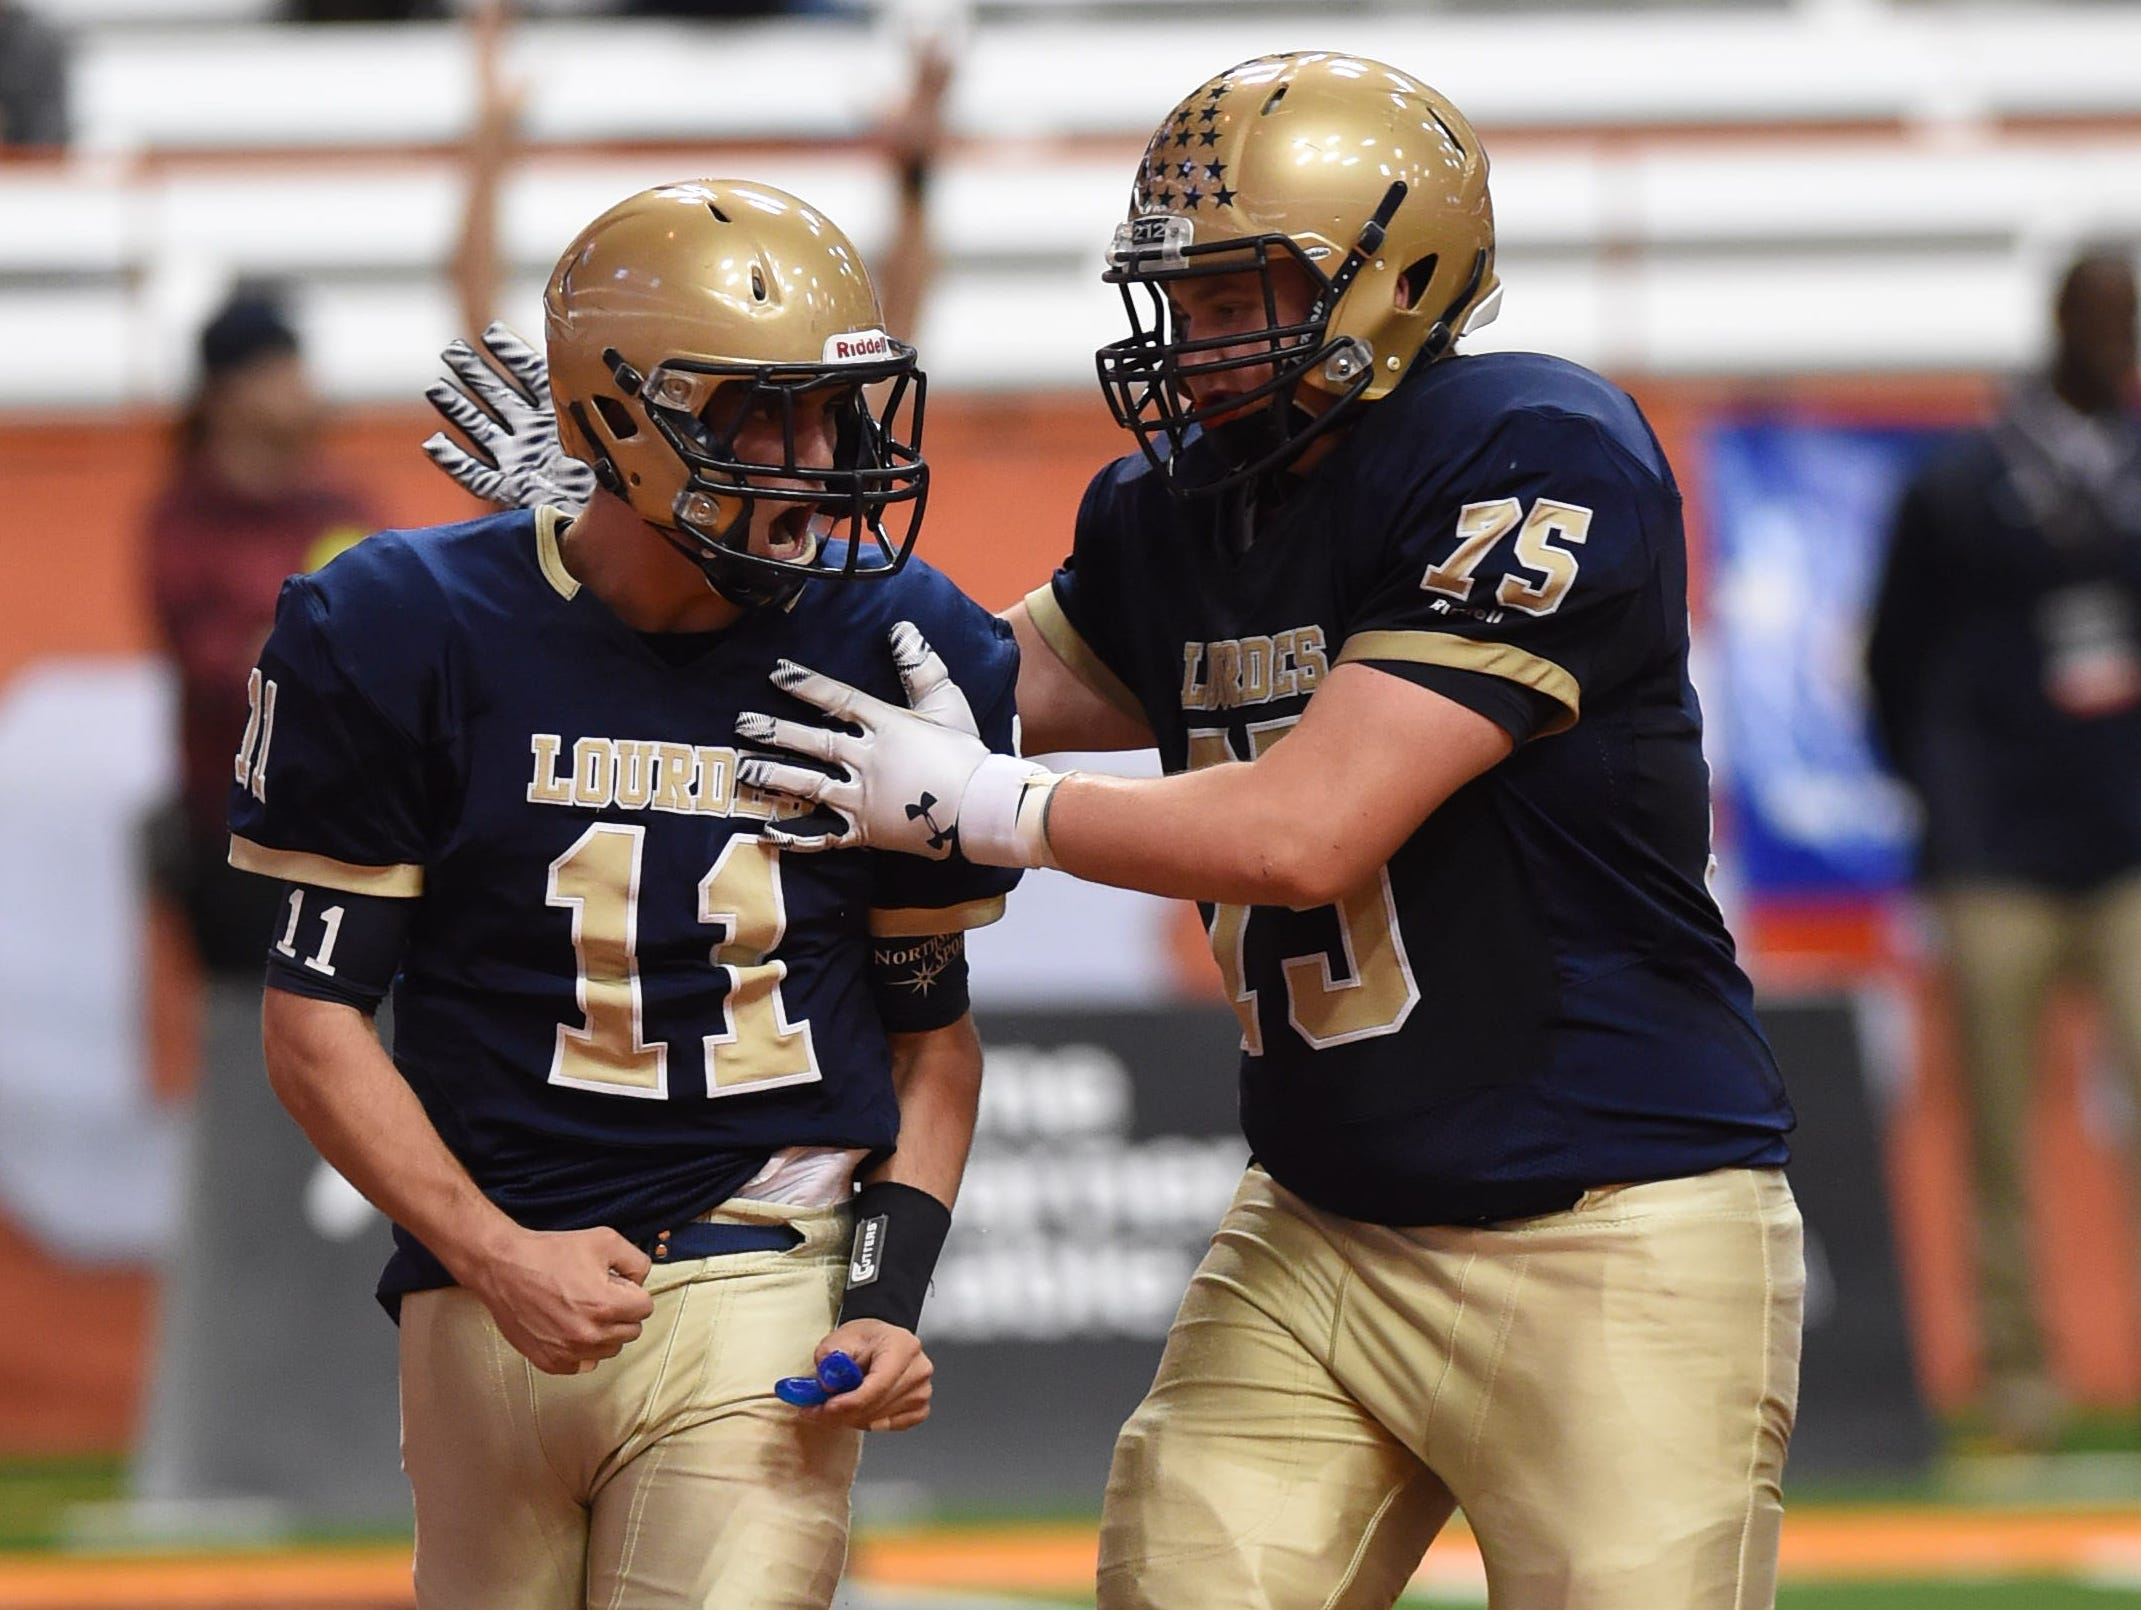 Lourdes' Dean Rotger and Liam Hilderbrand celebrate a touchdown during the New York State Championship final versus South Park in Syracuse on Friday.